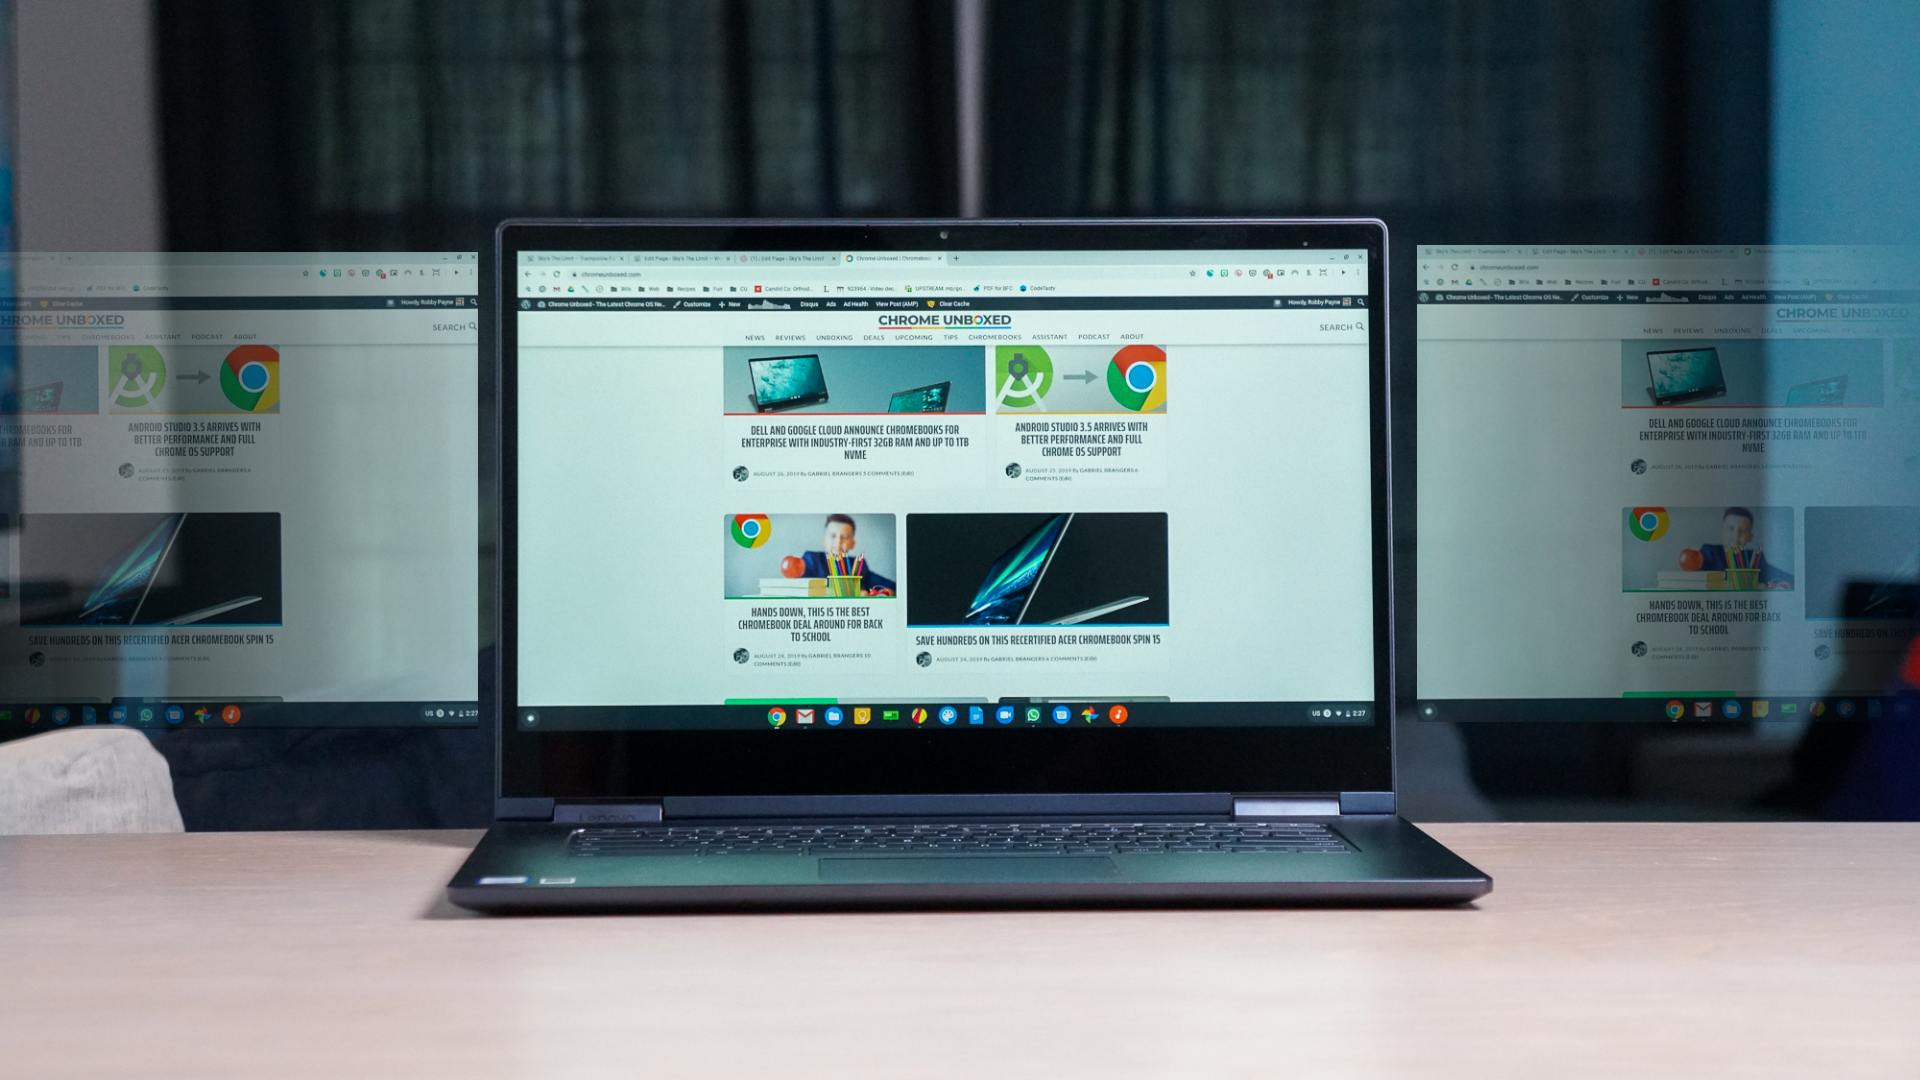 The full Virtual Desks experience landing in Chrome OS 78 with a big change to trackpad gestures